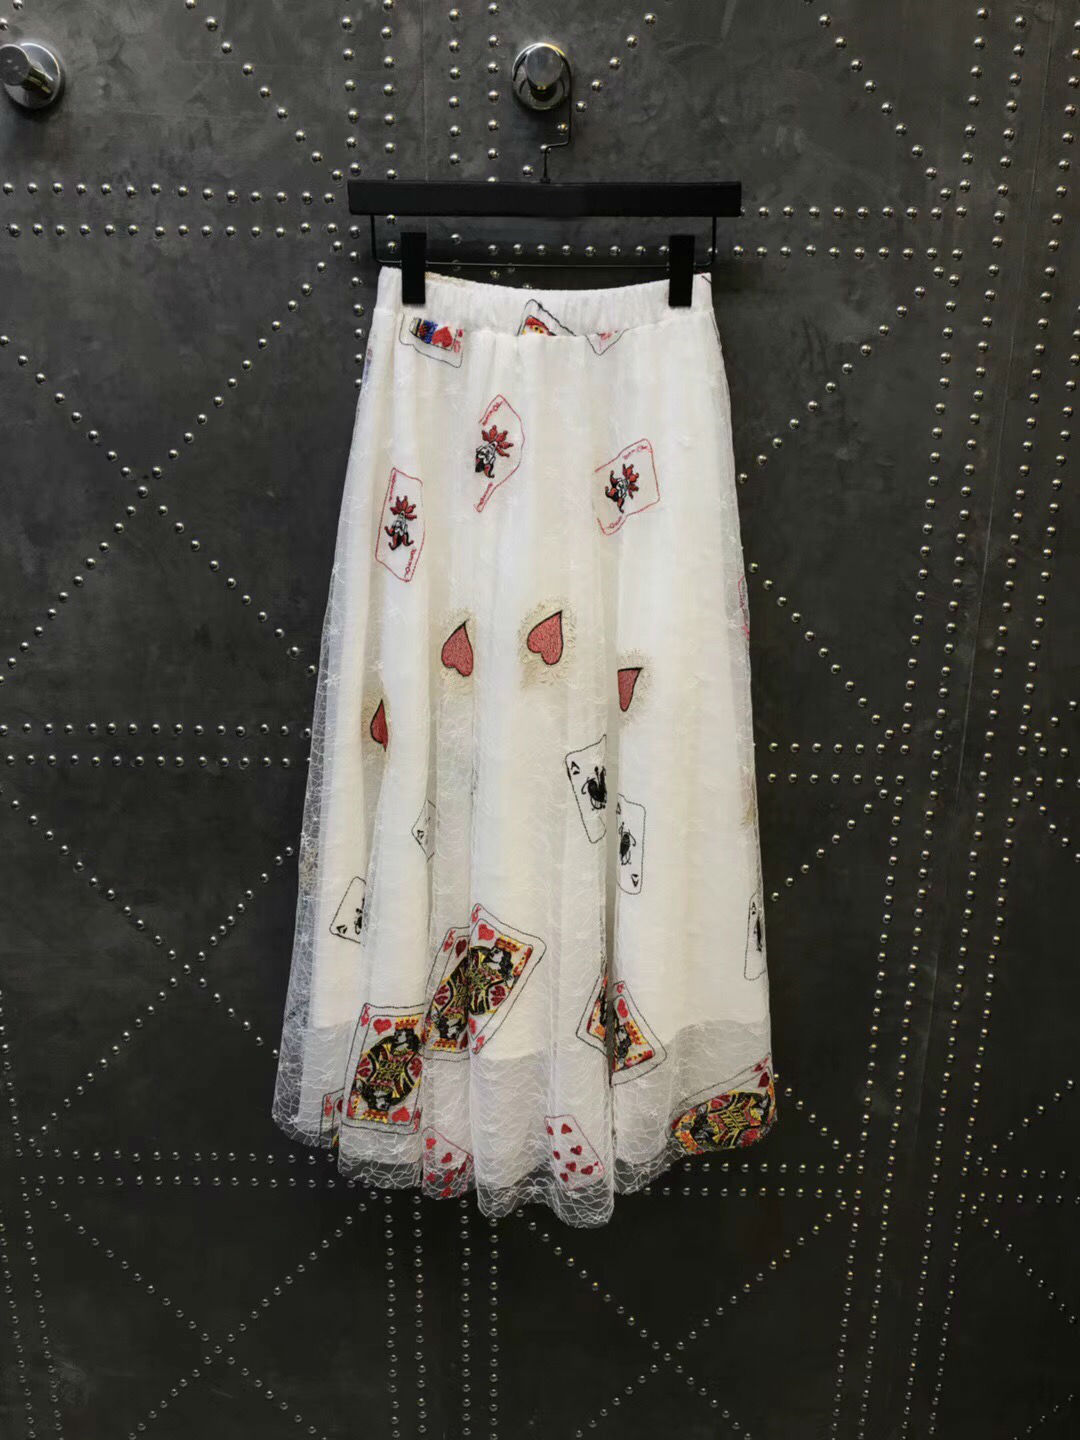 Free Shipping 2018 New Arrival Summer Skirt For Women Poker Embroidered Lace High Waist Skirt ethnic women s embroidered skirt